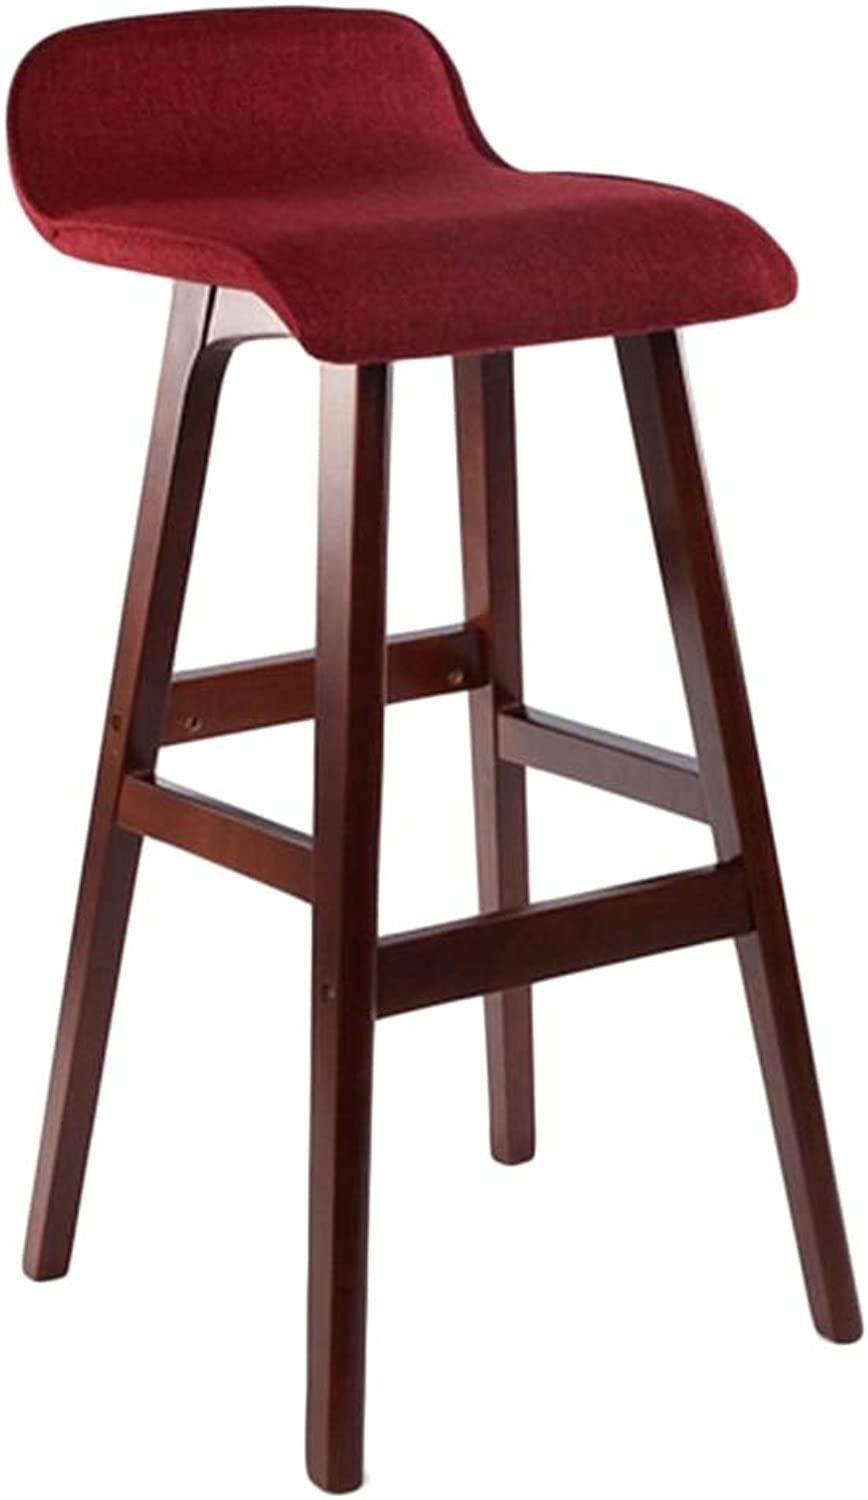 BARSTOOLRI Bar Stool with Backrest, Solid Wood Non-Slip Ergonomic Wine Red Removable Cushion Cover High Chair for Living Room Kitchen Office Garden (Size   Short)